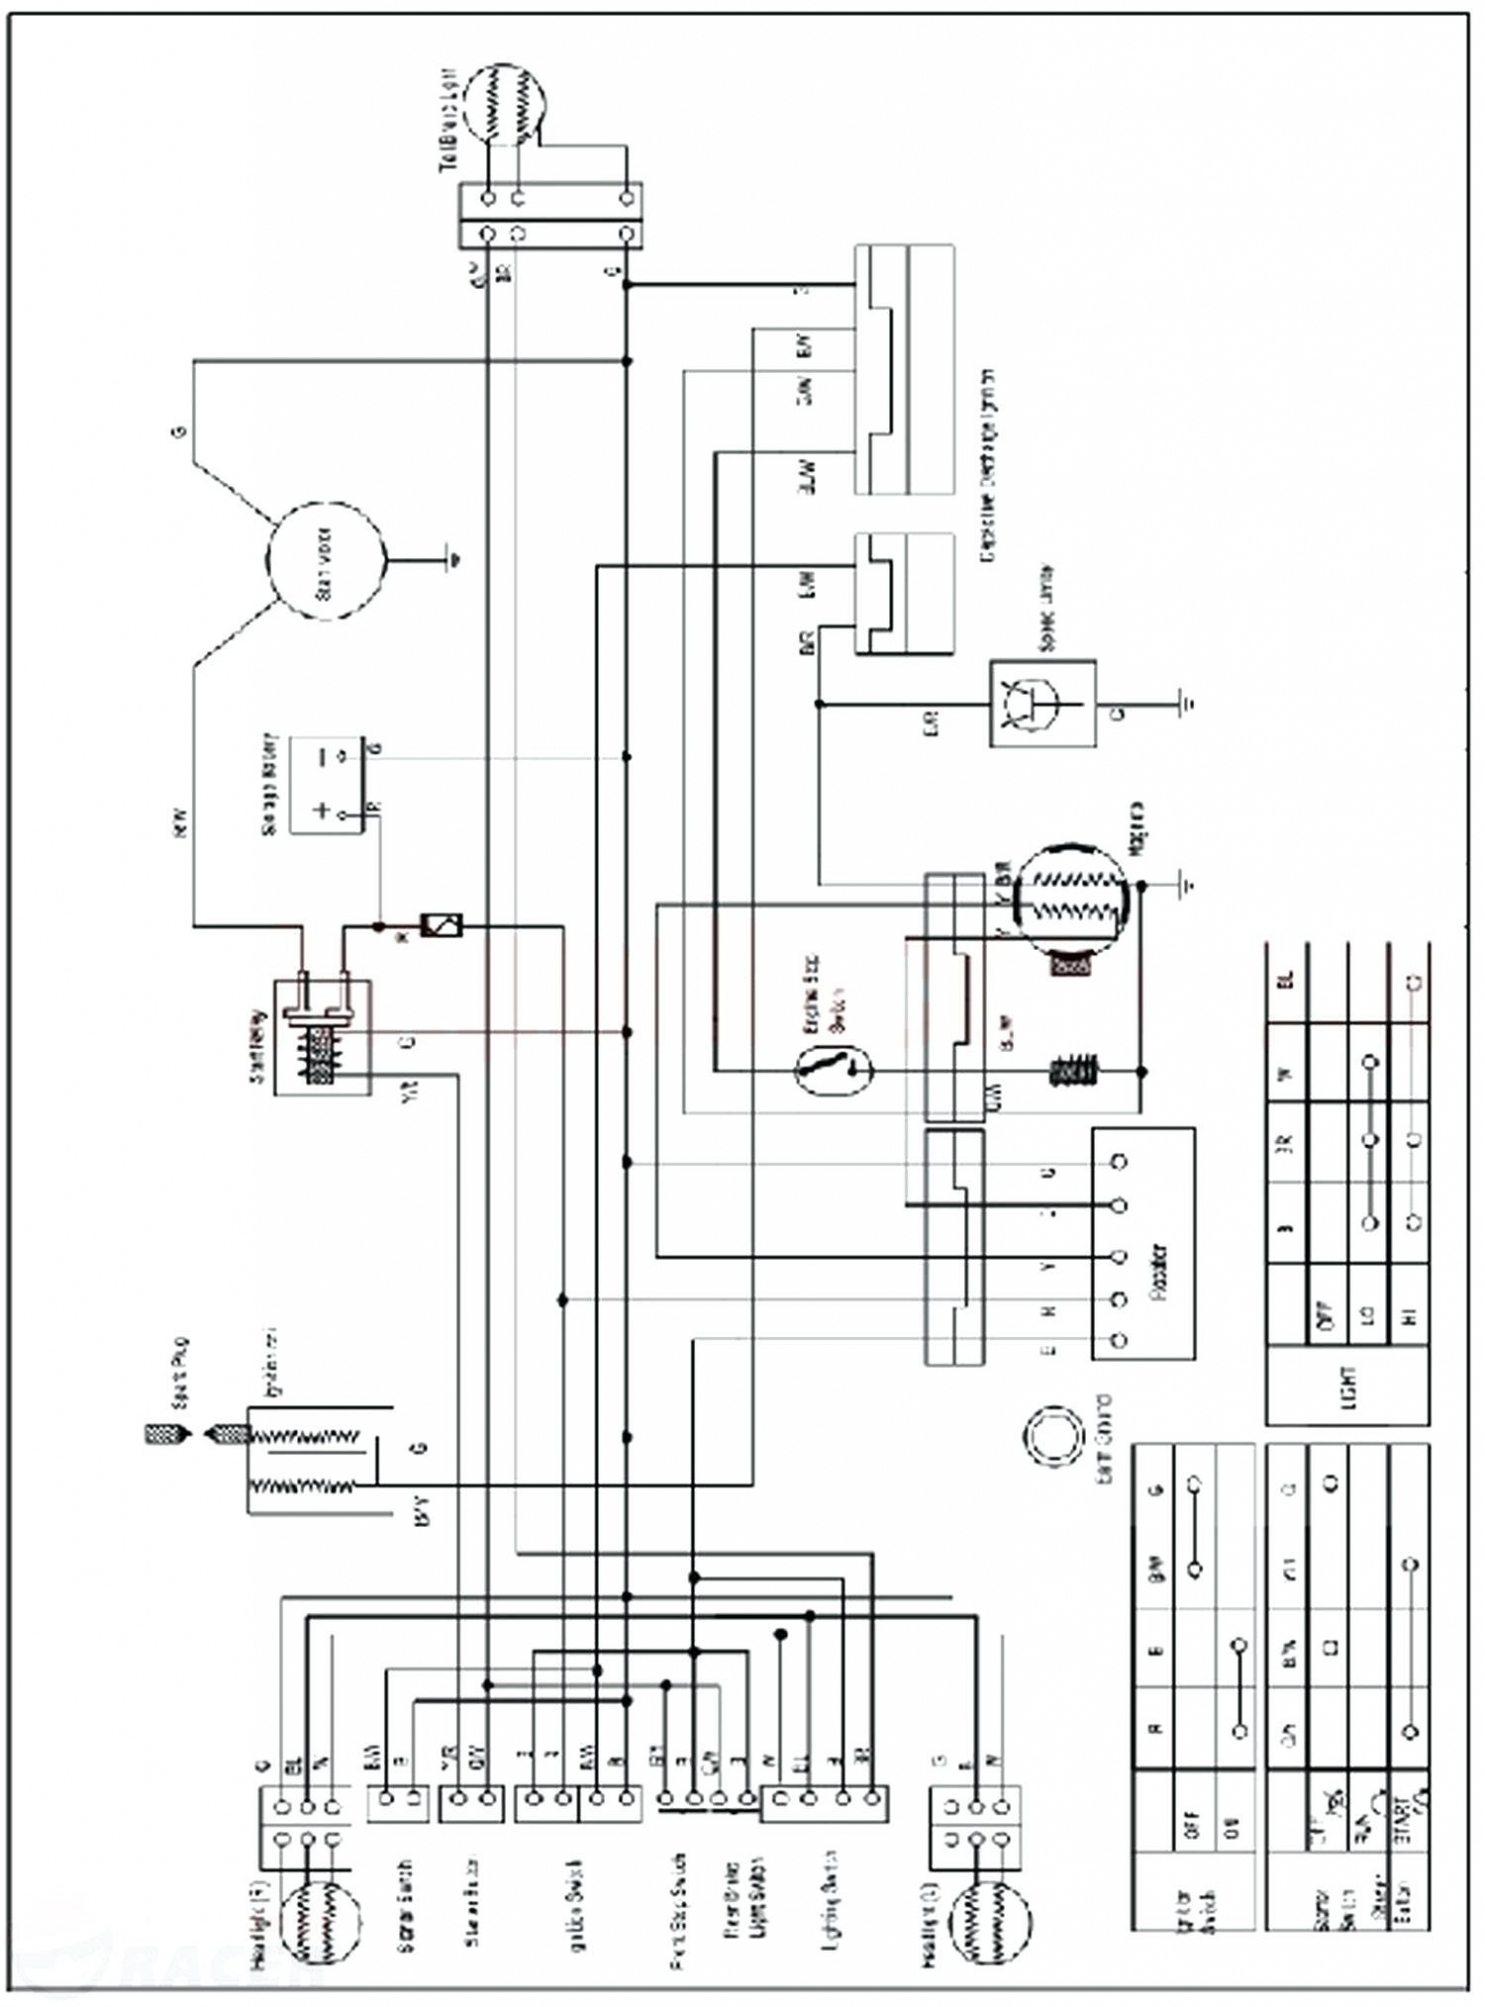 125Cc Taotao Atv Wiring Diagram | Schematic Diagram - Tao Tao 110 Atv Wiring Diagram